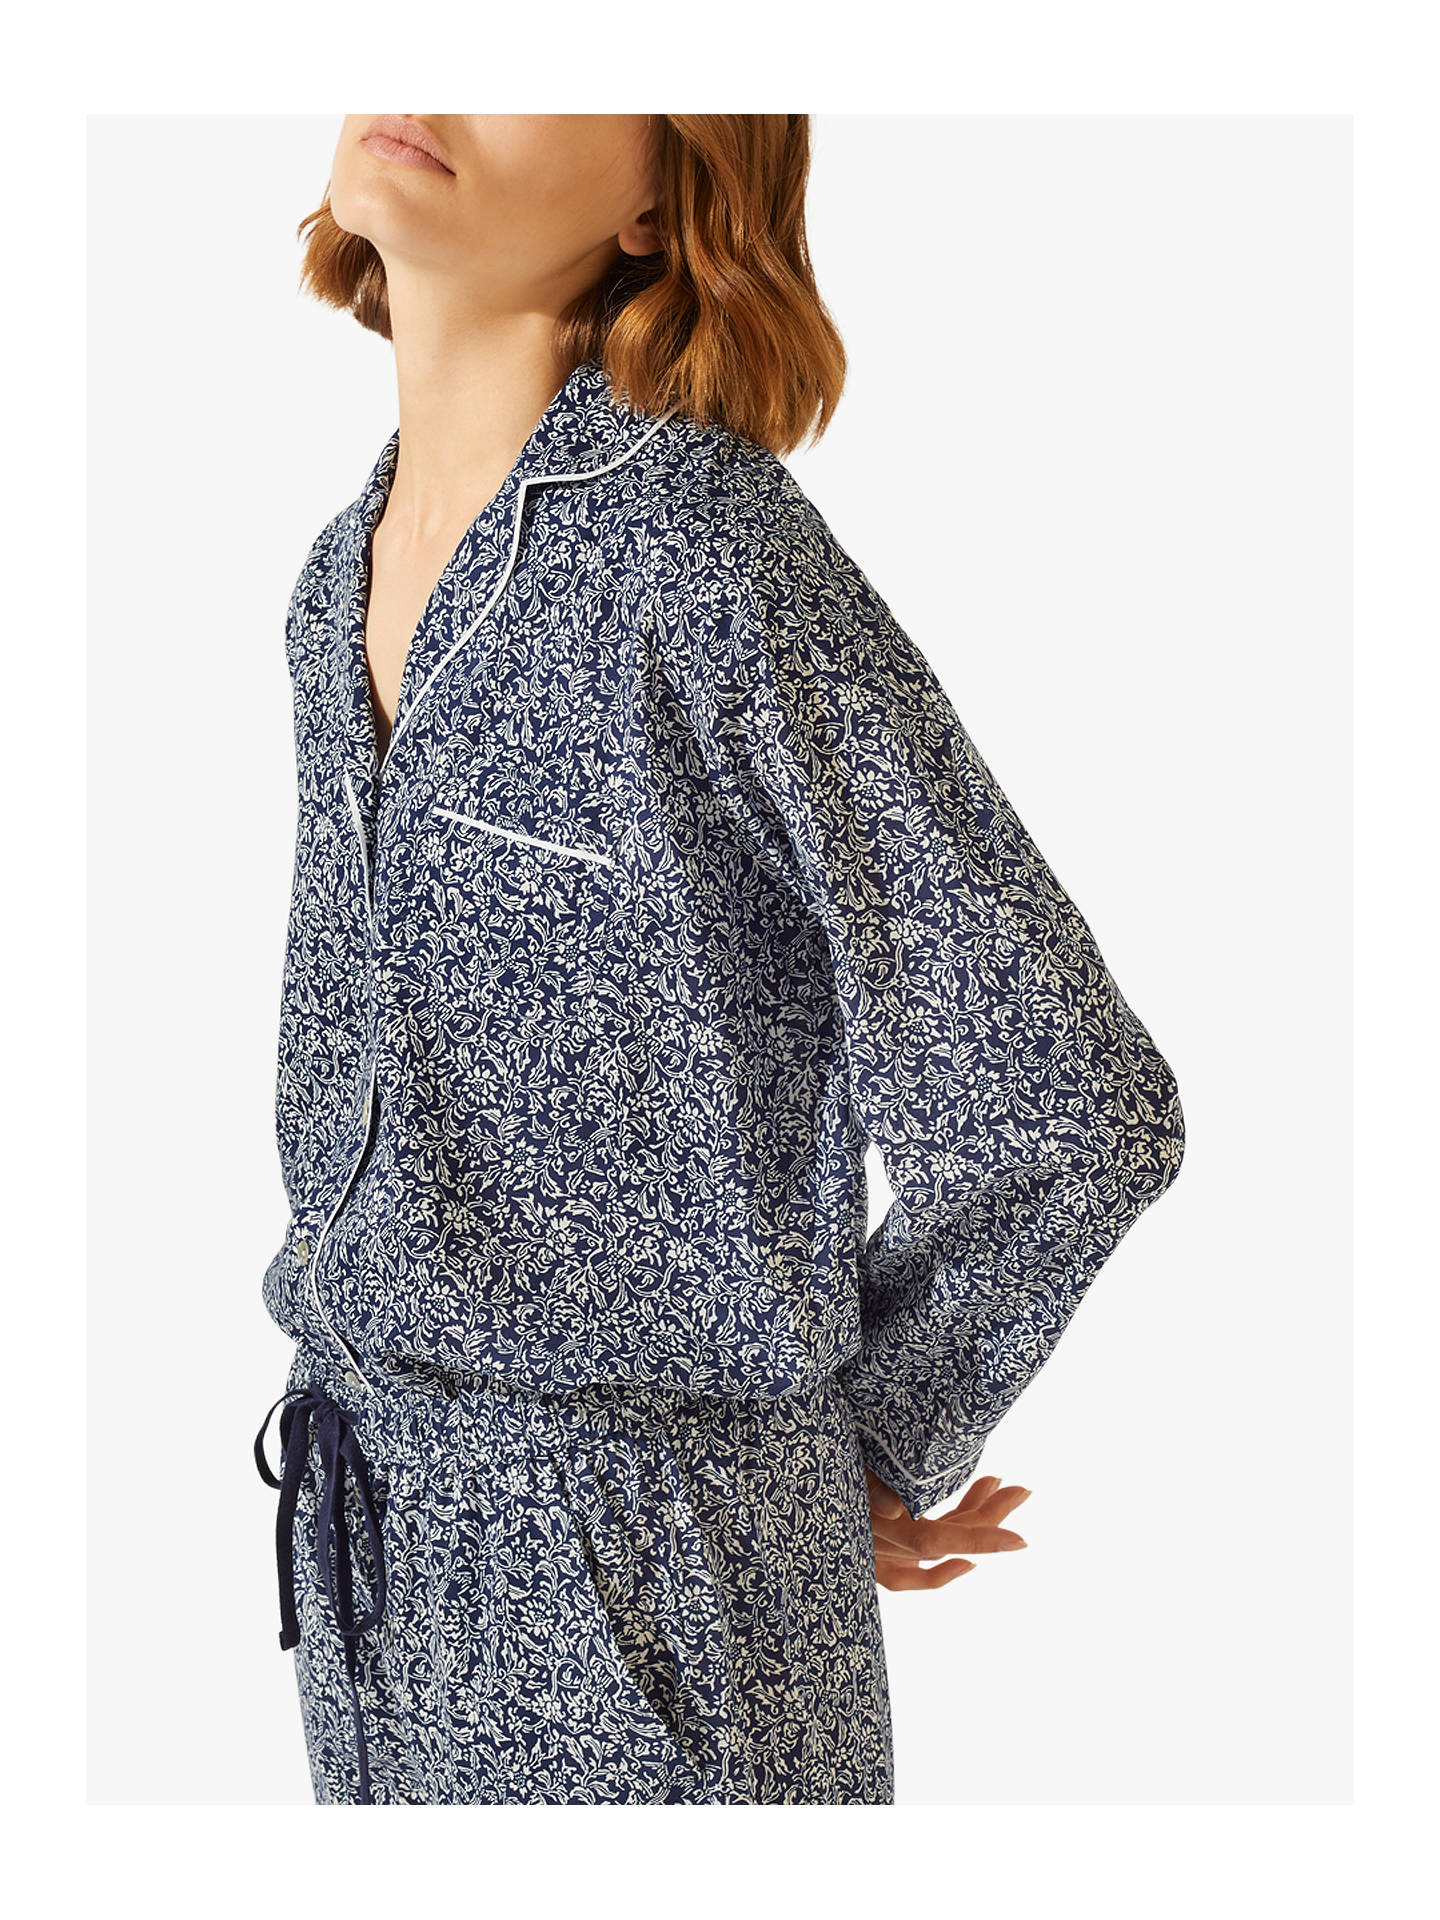 Jigsaw Alice Parisian Pyjama Set £55, at John Lewis